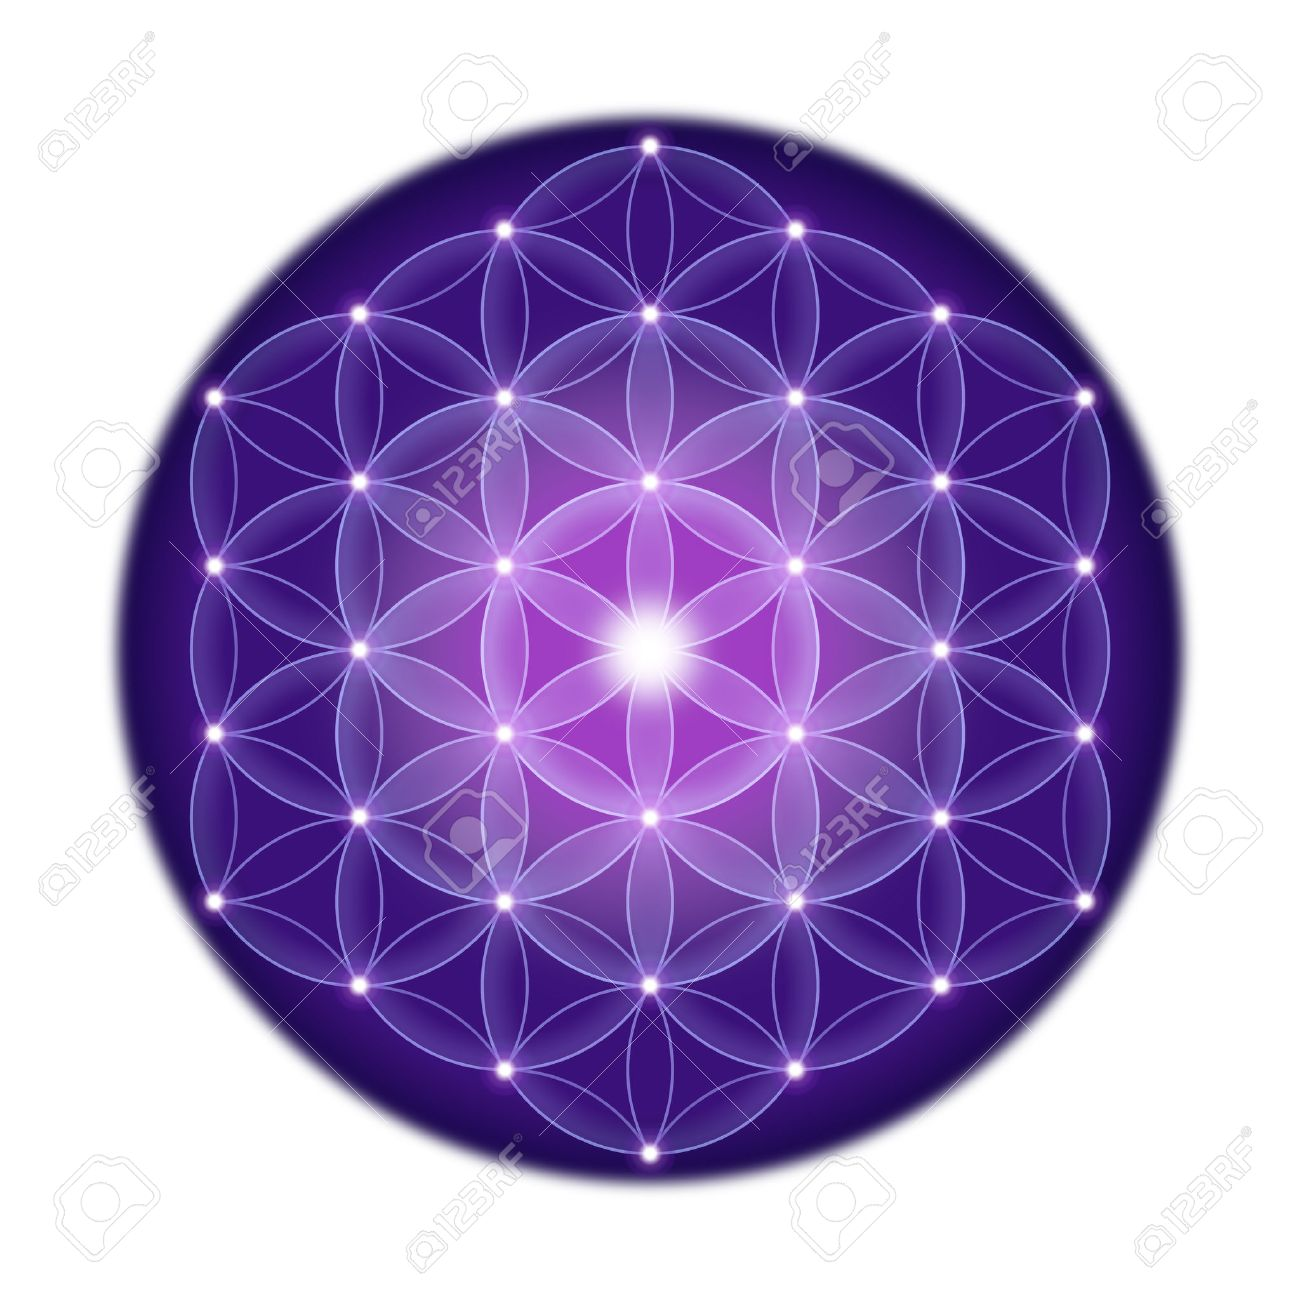 Bright Flower of Life with stars on white background, a spiritual symbol and Sacred Geometry since ancient times. Standard-Bild - 48697726